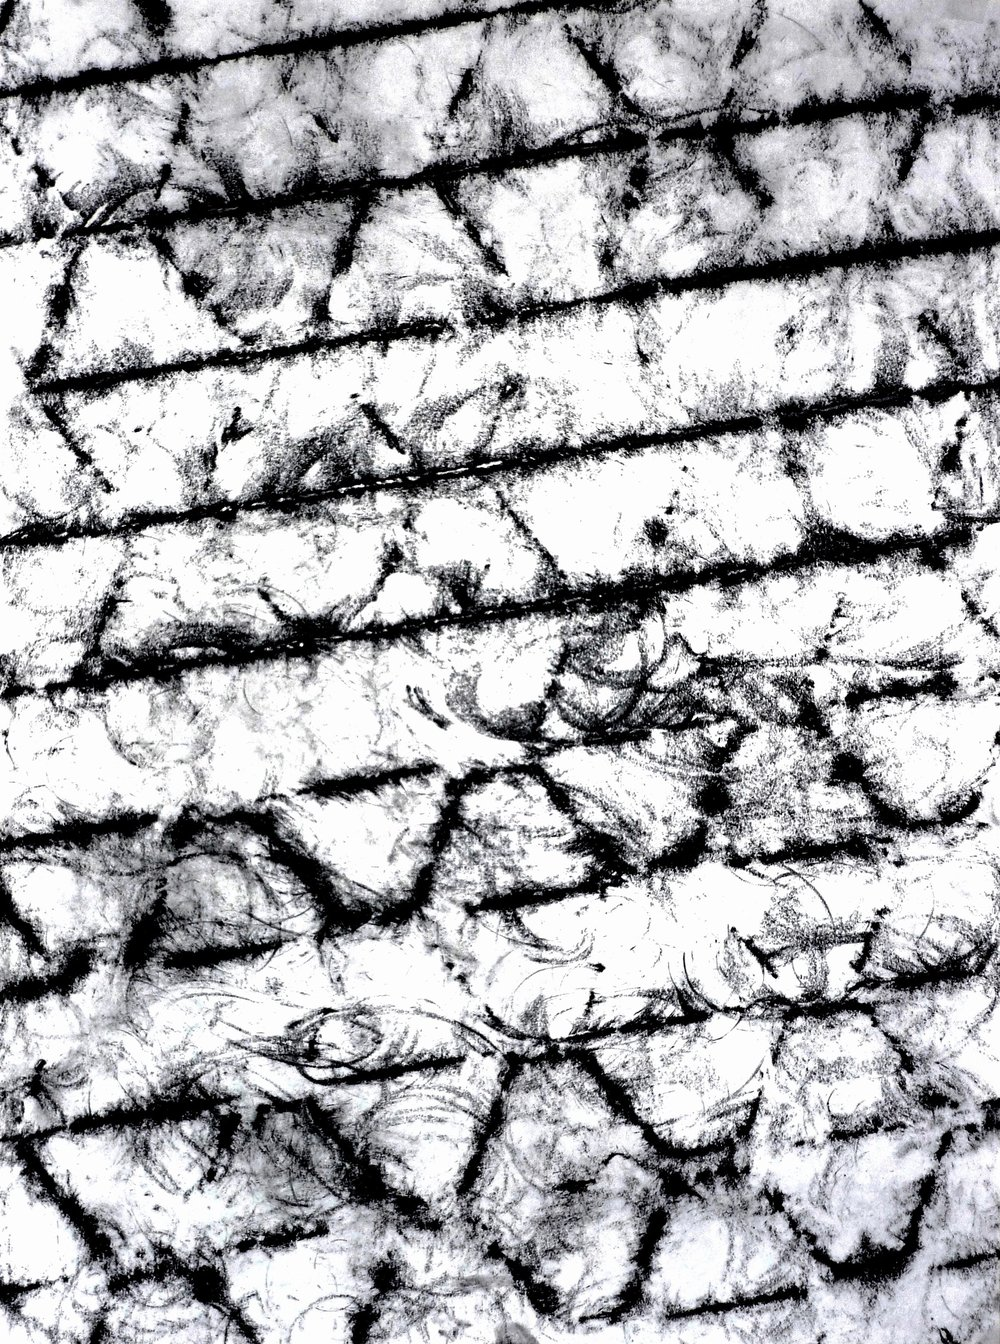 Space, Surface and Texture Investigations, Water Drain, 24 in. x 30 in., charcoal and graphite, 2010